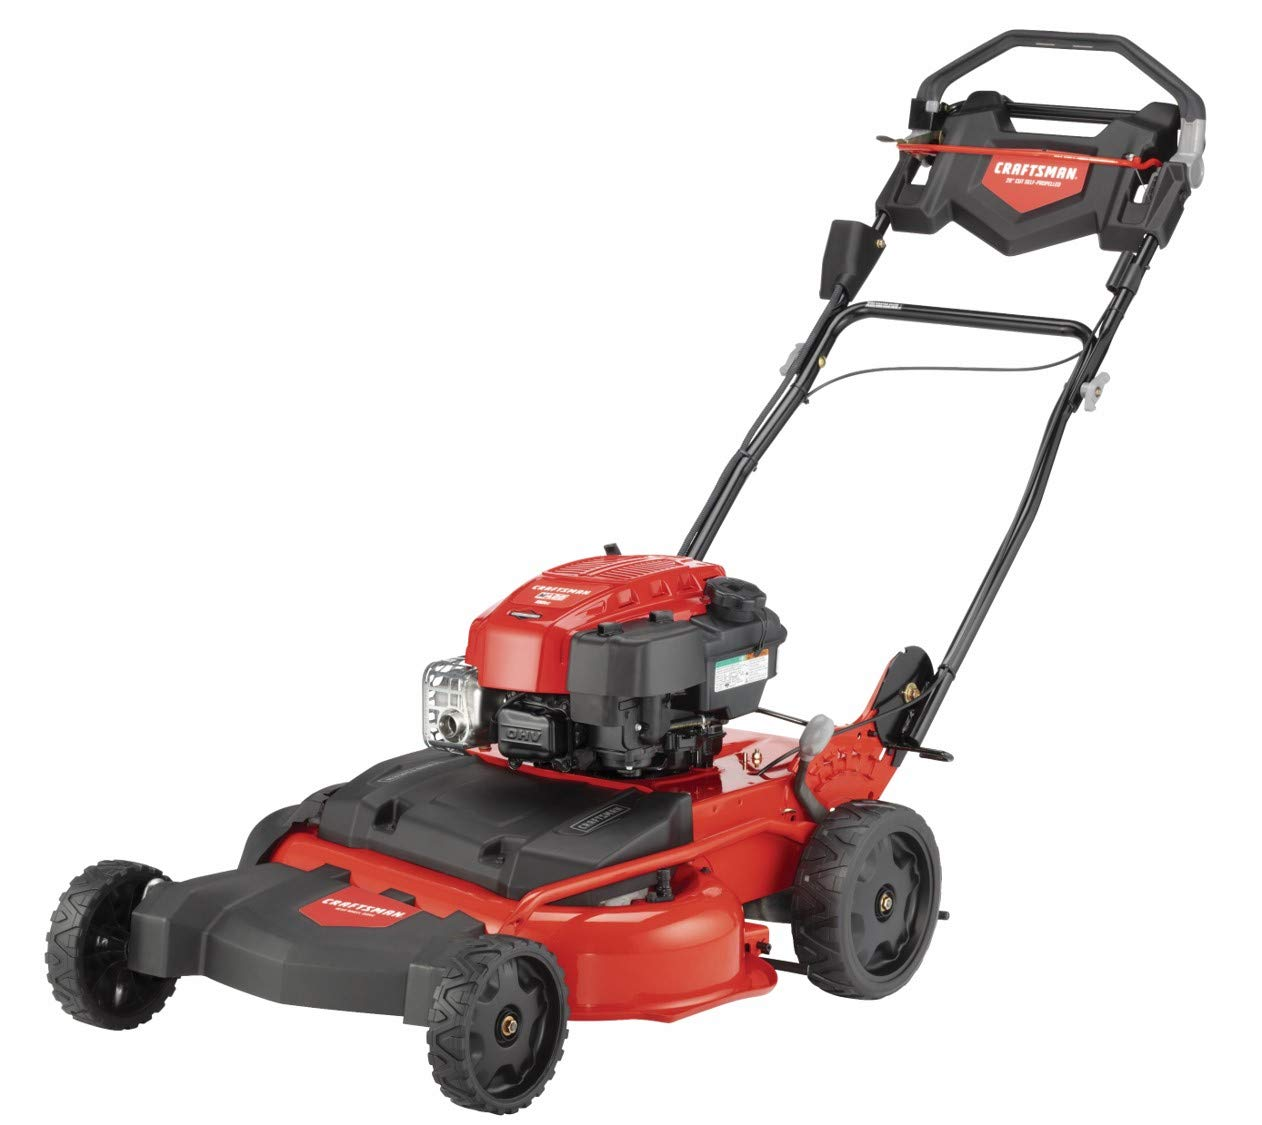 Craftsman M410 190cc Briggs & Stratton 875 Professional Series 28-Inch 2-in-1 Self-Propelled RWD Gas Powered Lawn Mower 1 POWERFUL 190CC OHV GAS ENGINE: Powerful Briggs & Stratton engine equipped with recoil and ready start-just pull to start! 2-IN-1 CAPABILITIES: Unit can mulch and side discharge. REAR WHEEL DRIVE: Provides more traction and the ability to operate over hilly terrain.